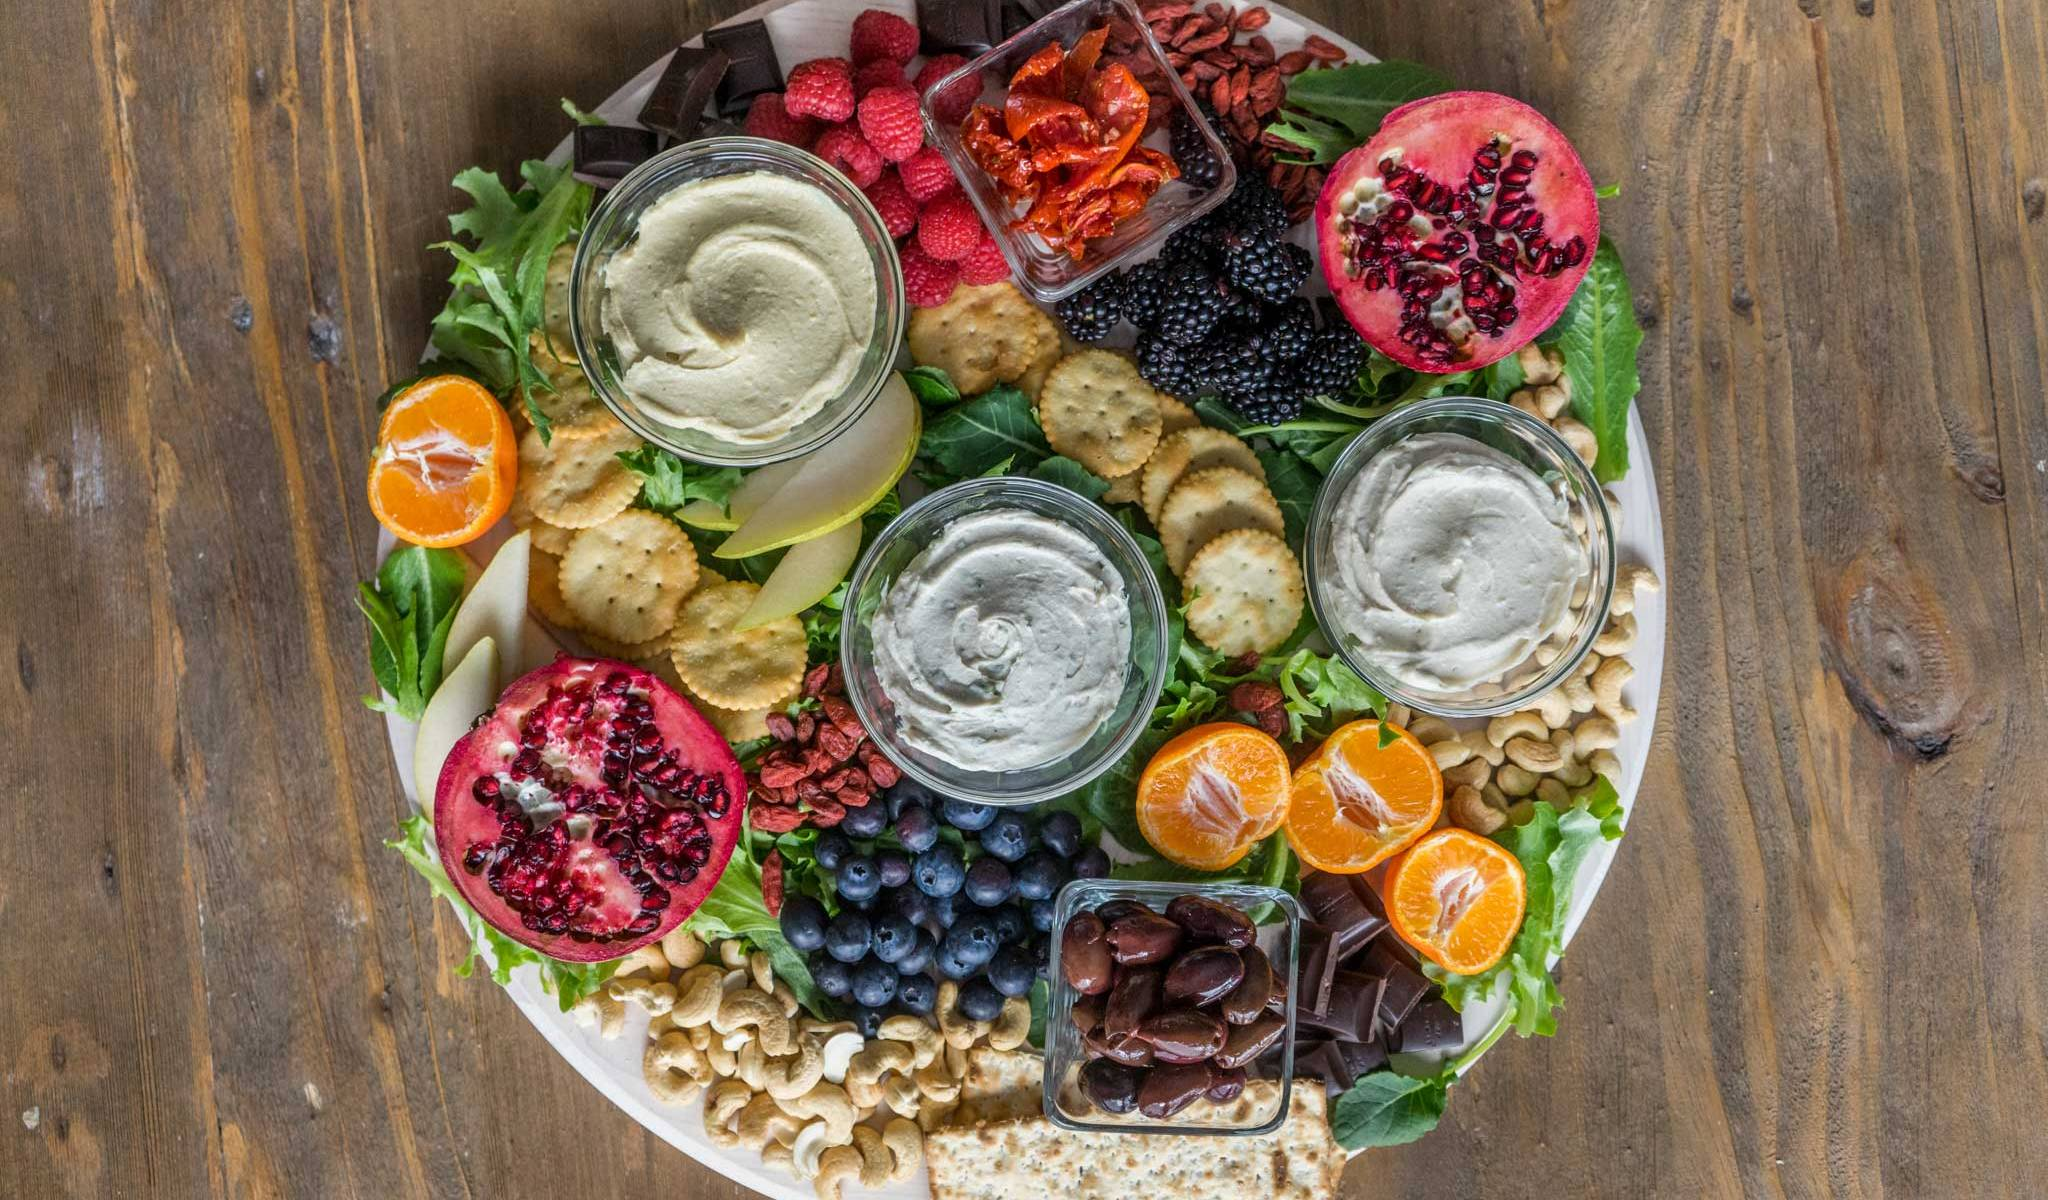 Vegan Nut Cheese Spread with Fruit